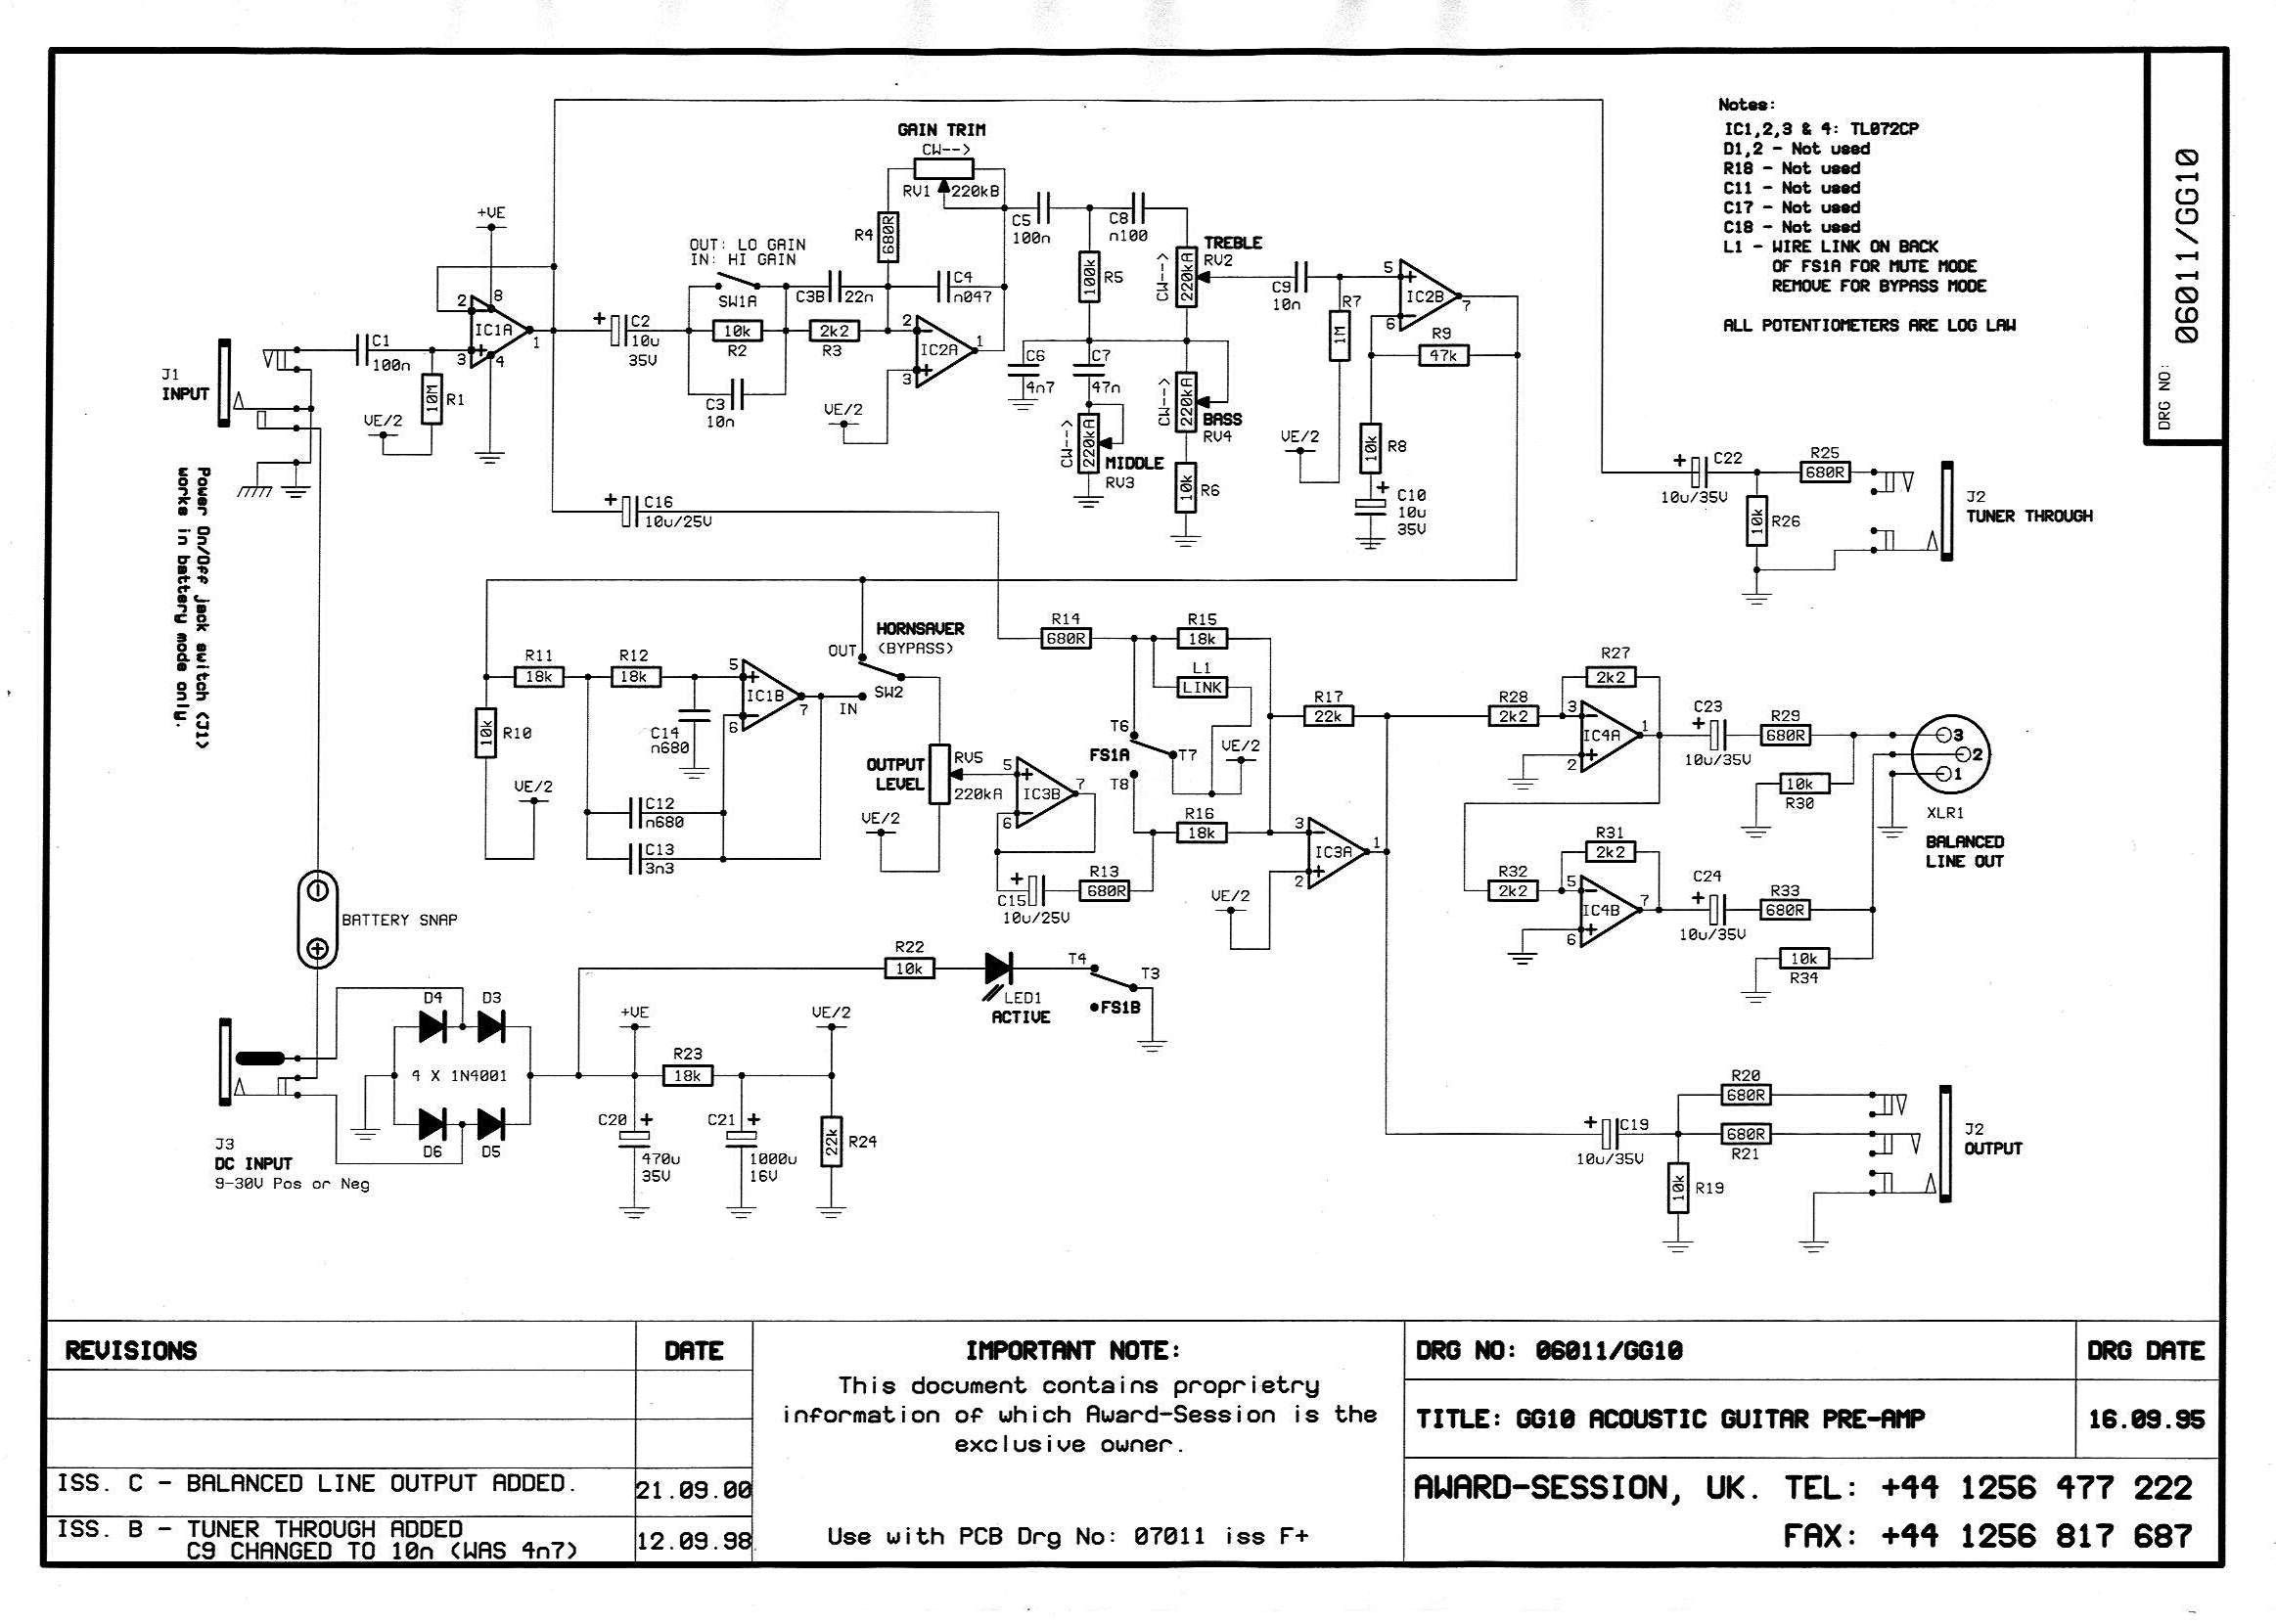 New Taylor Guitar Wiring Diagram #diagram #diagramsample #diagramtemplate # wiringdiagram #diagramchart #worksheet #worksheet… | Guitar, Taylor guitar, Diagram  chartPinterest